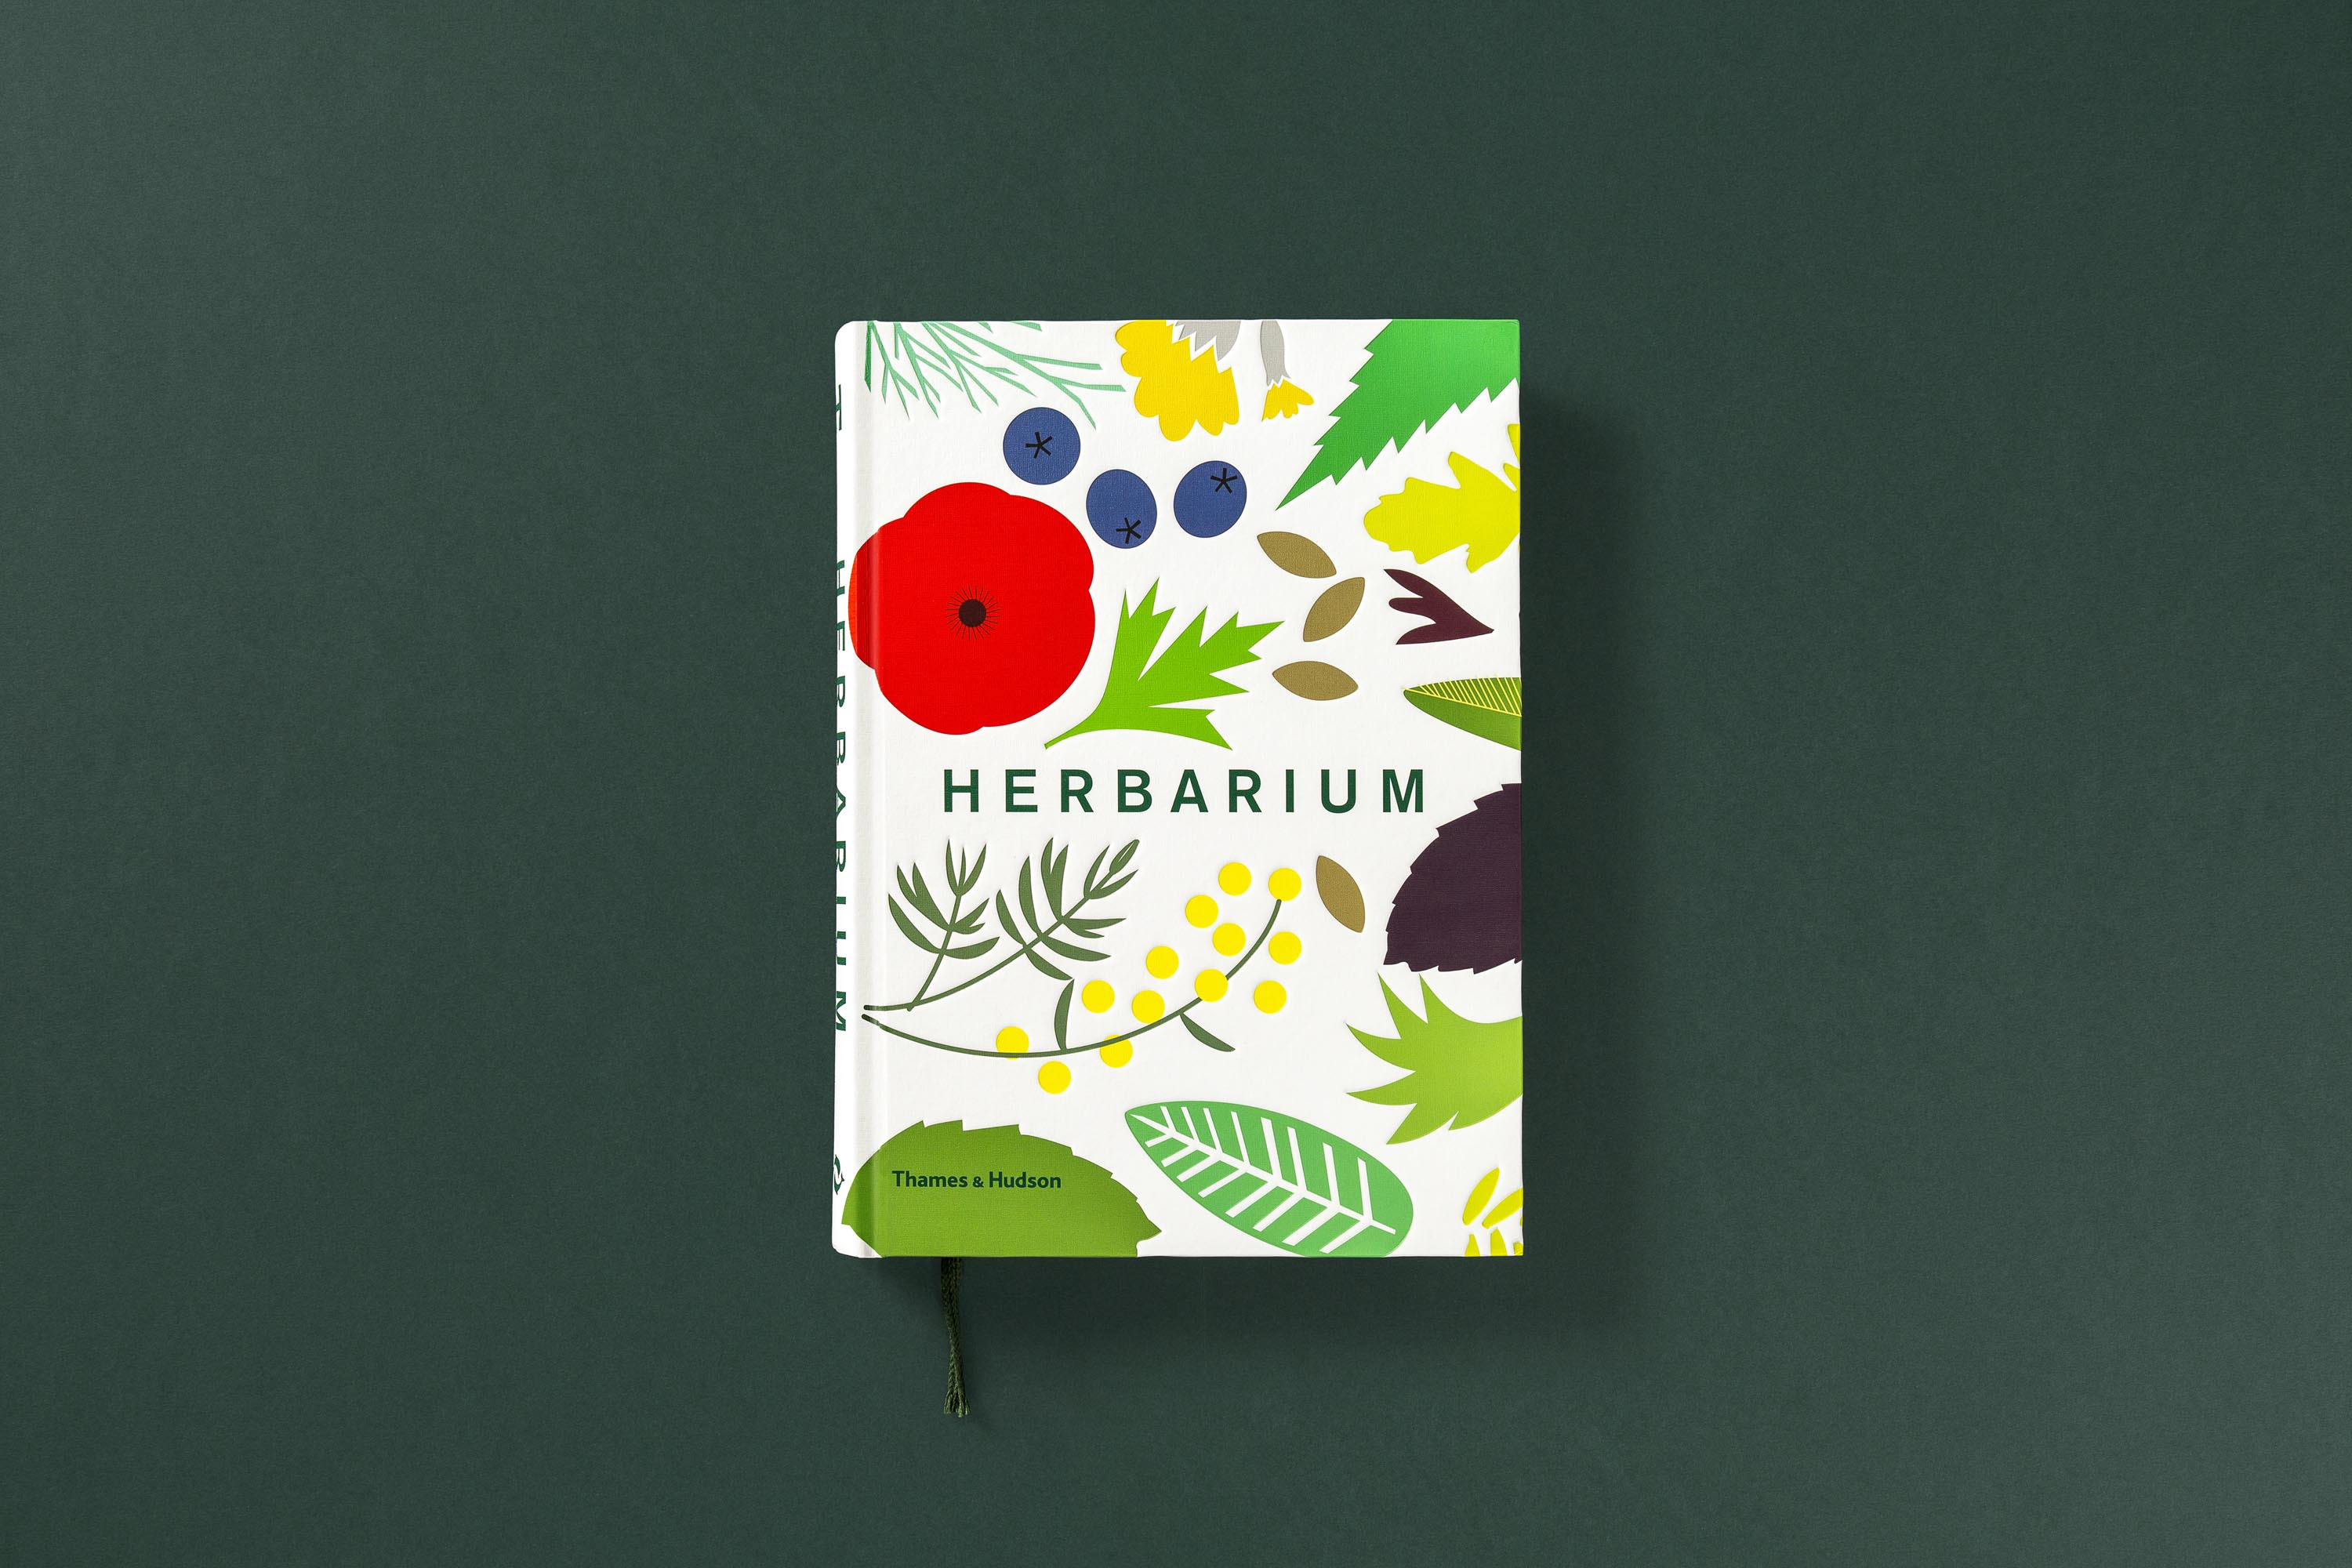 Children S Book Cover Design Inspiration : Herbarium book by caz hildebrand